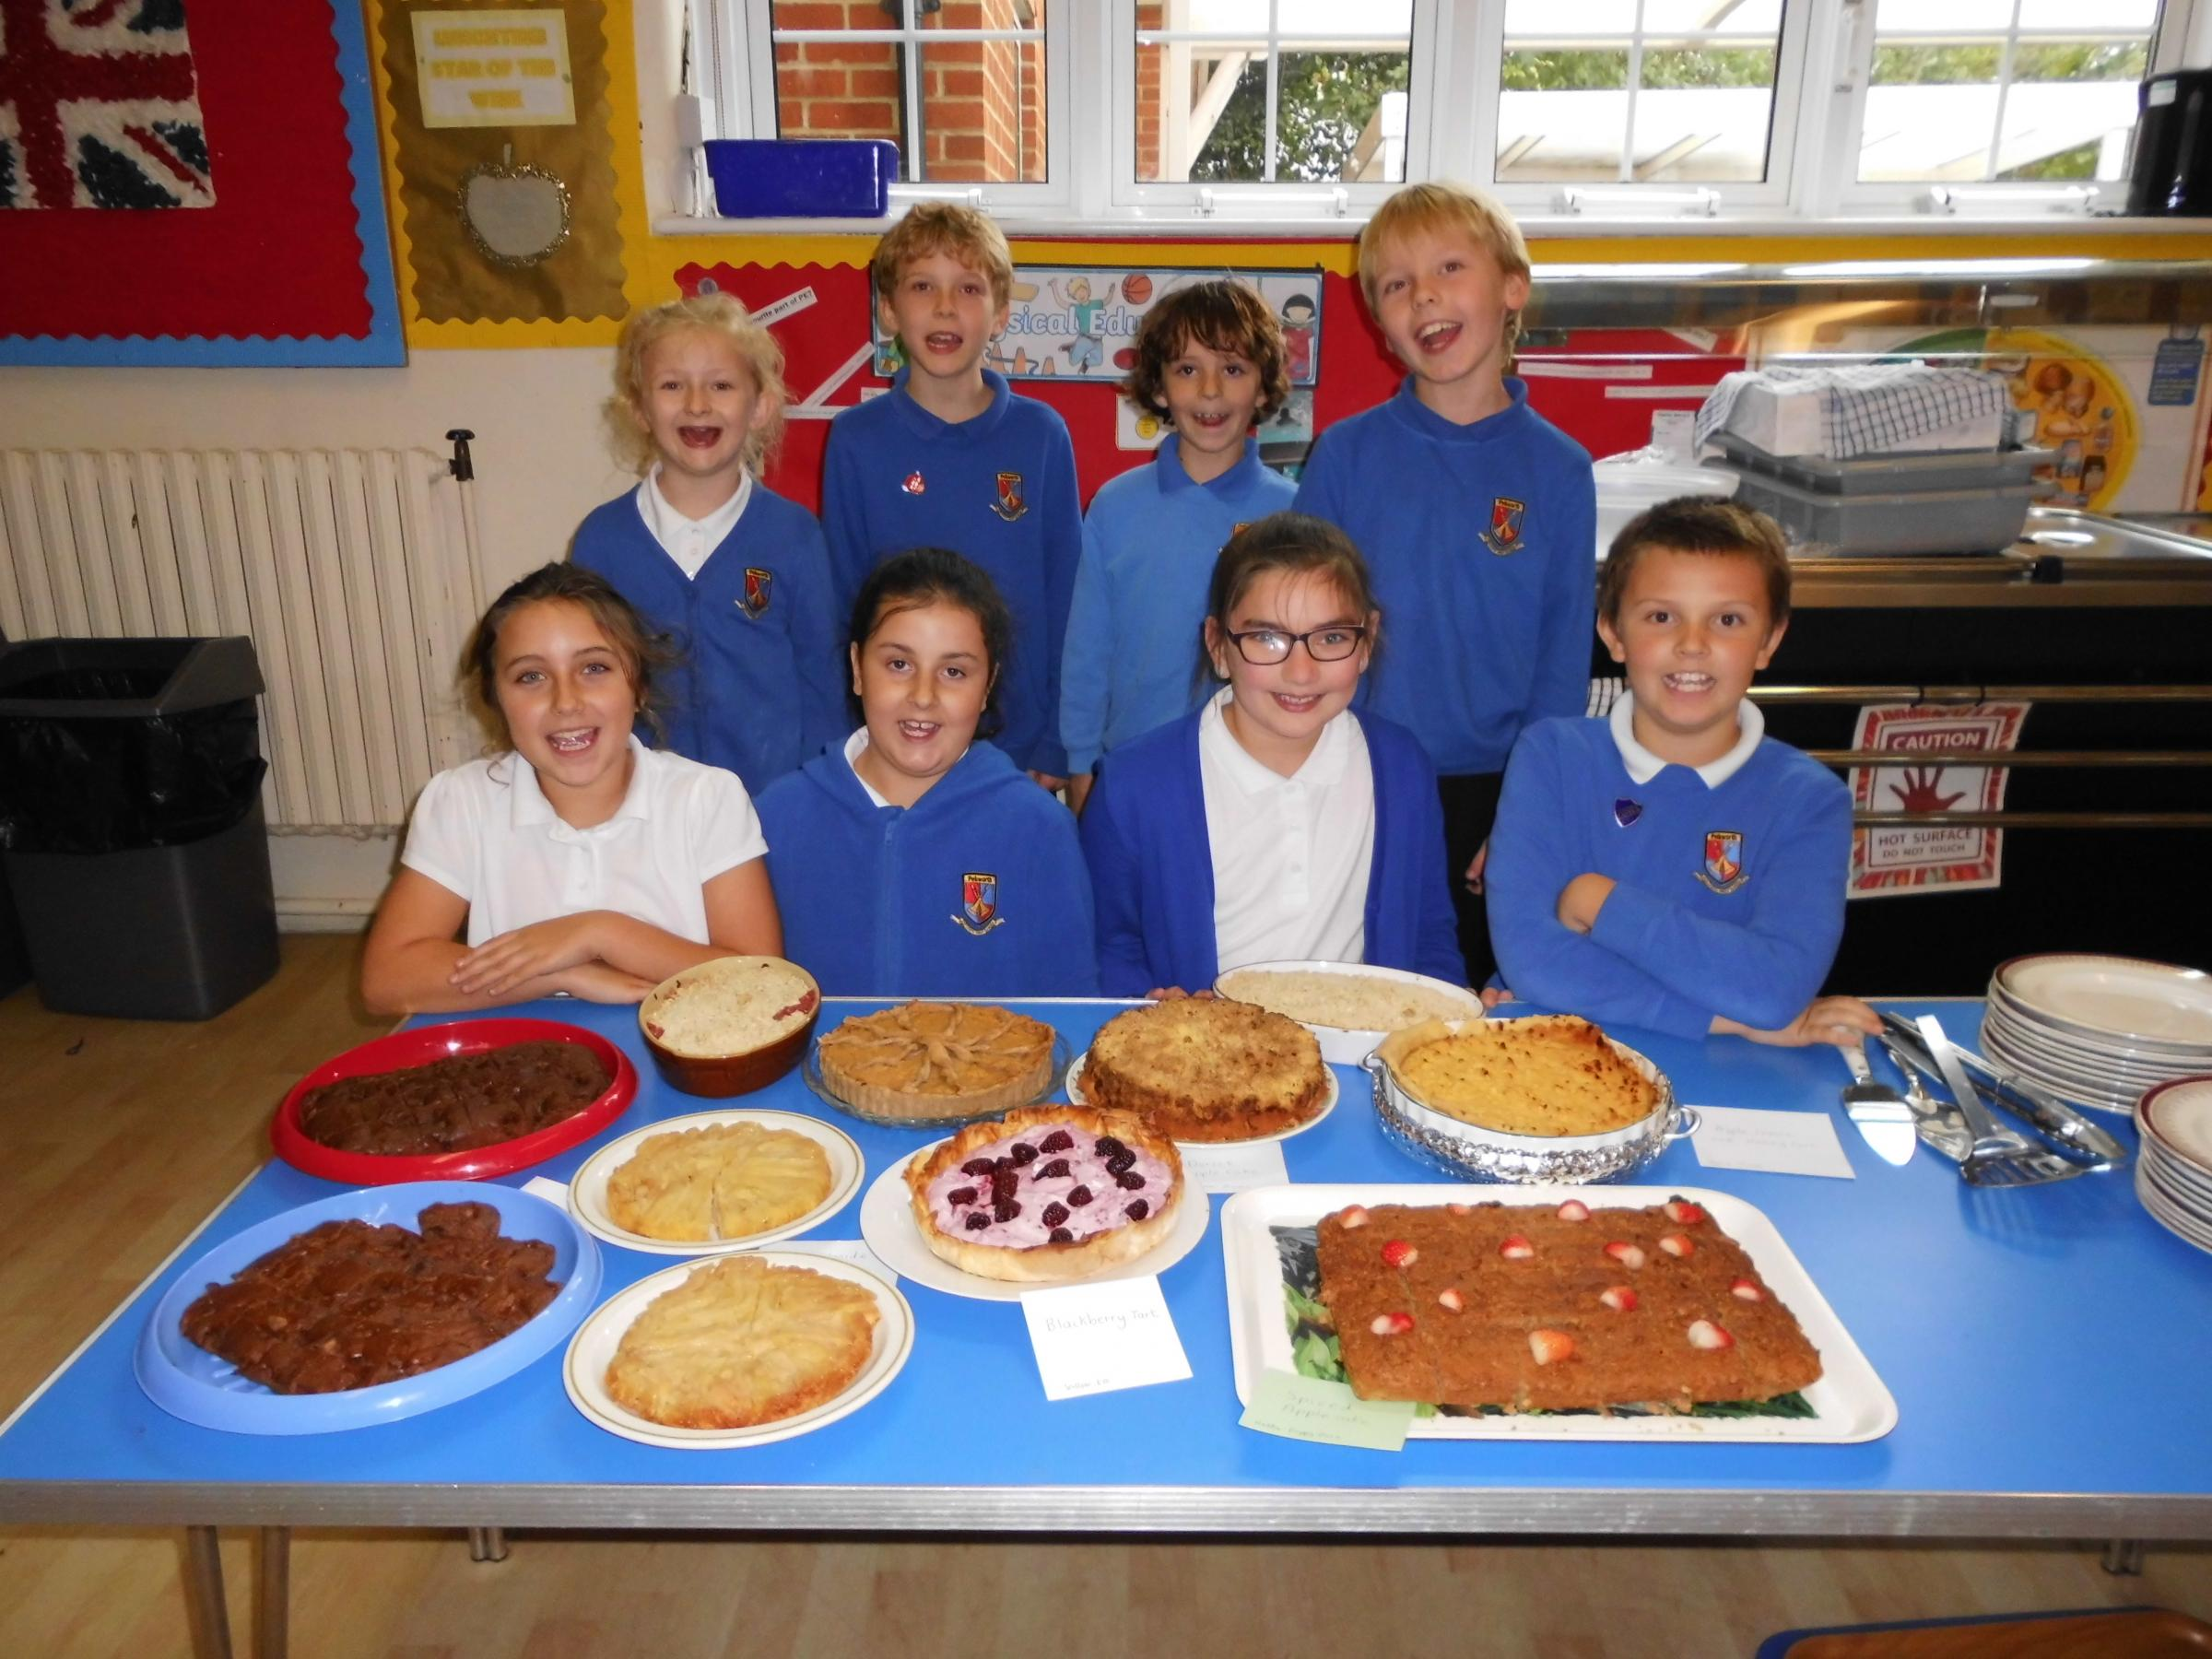 Pebworth First School pupils turn harvest fruit into yummy puddings